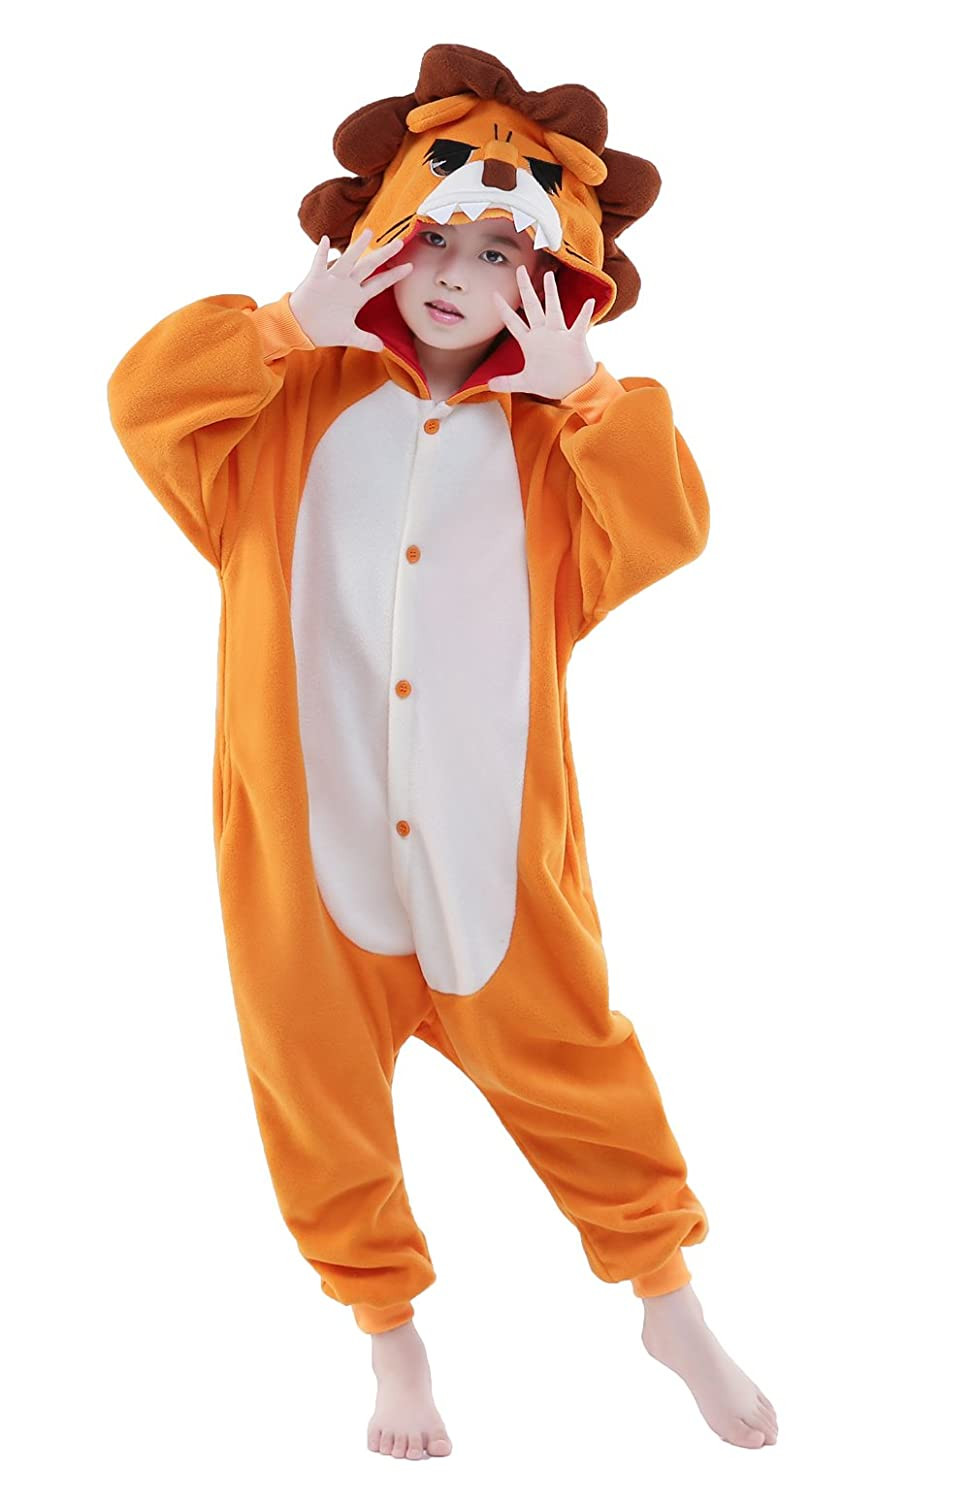 038302fd9e9f Amazon.com  NEWCOSPLAY Homewear Unisex Children Onesie Costume  Clothing